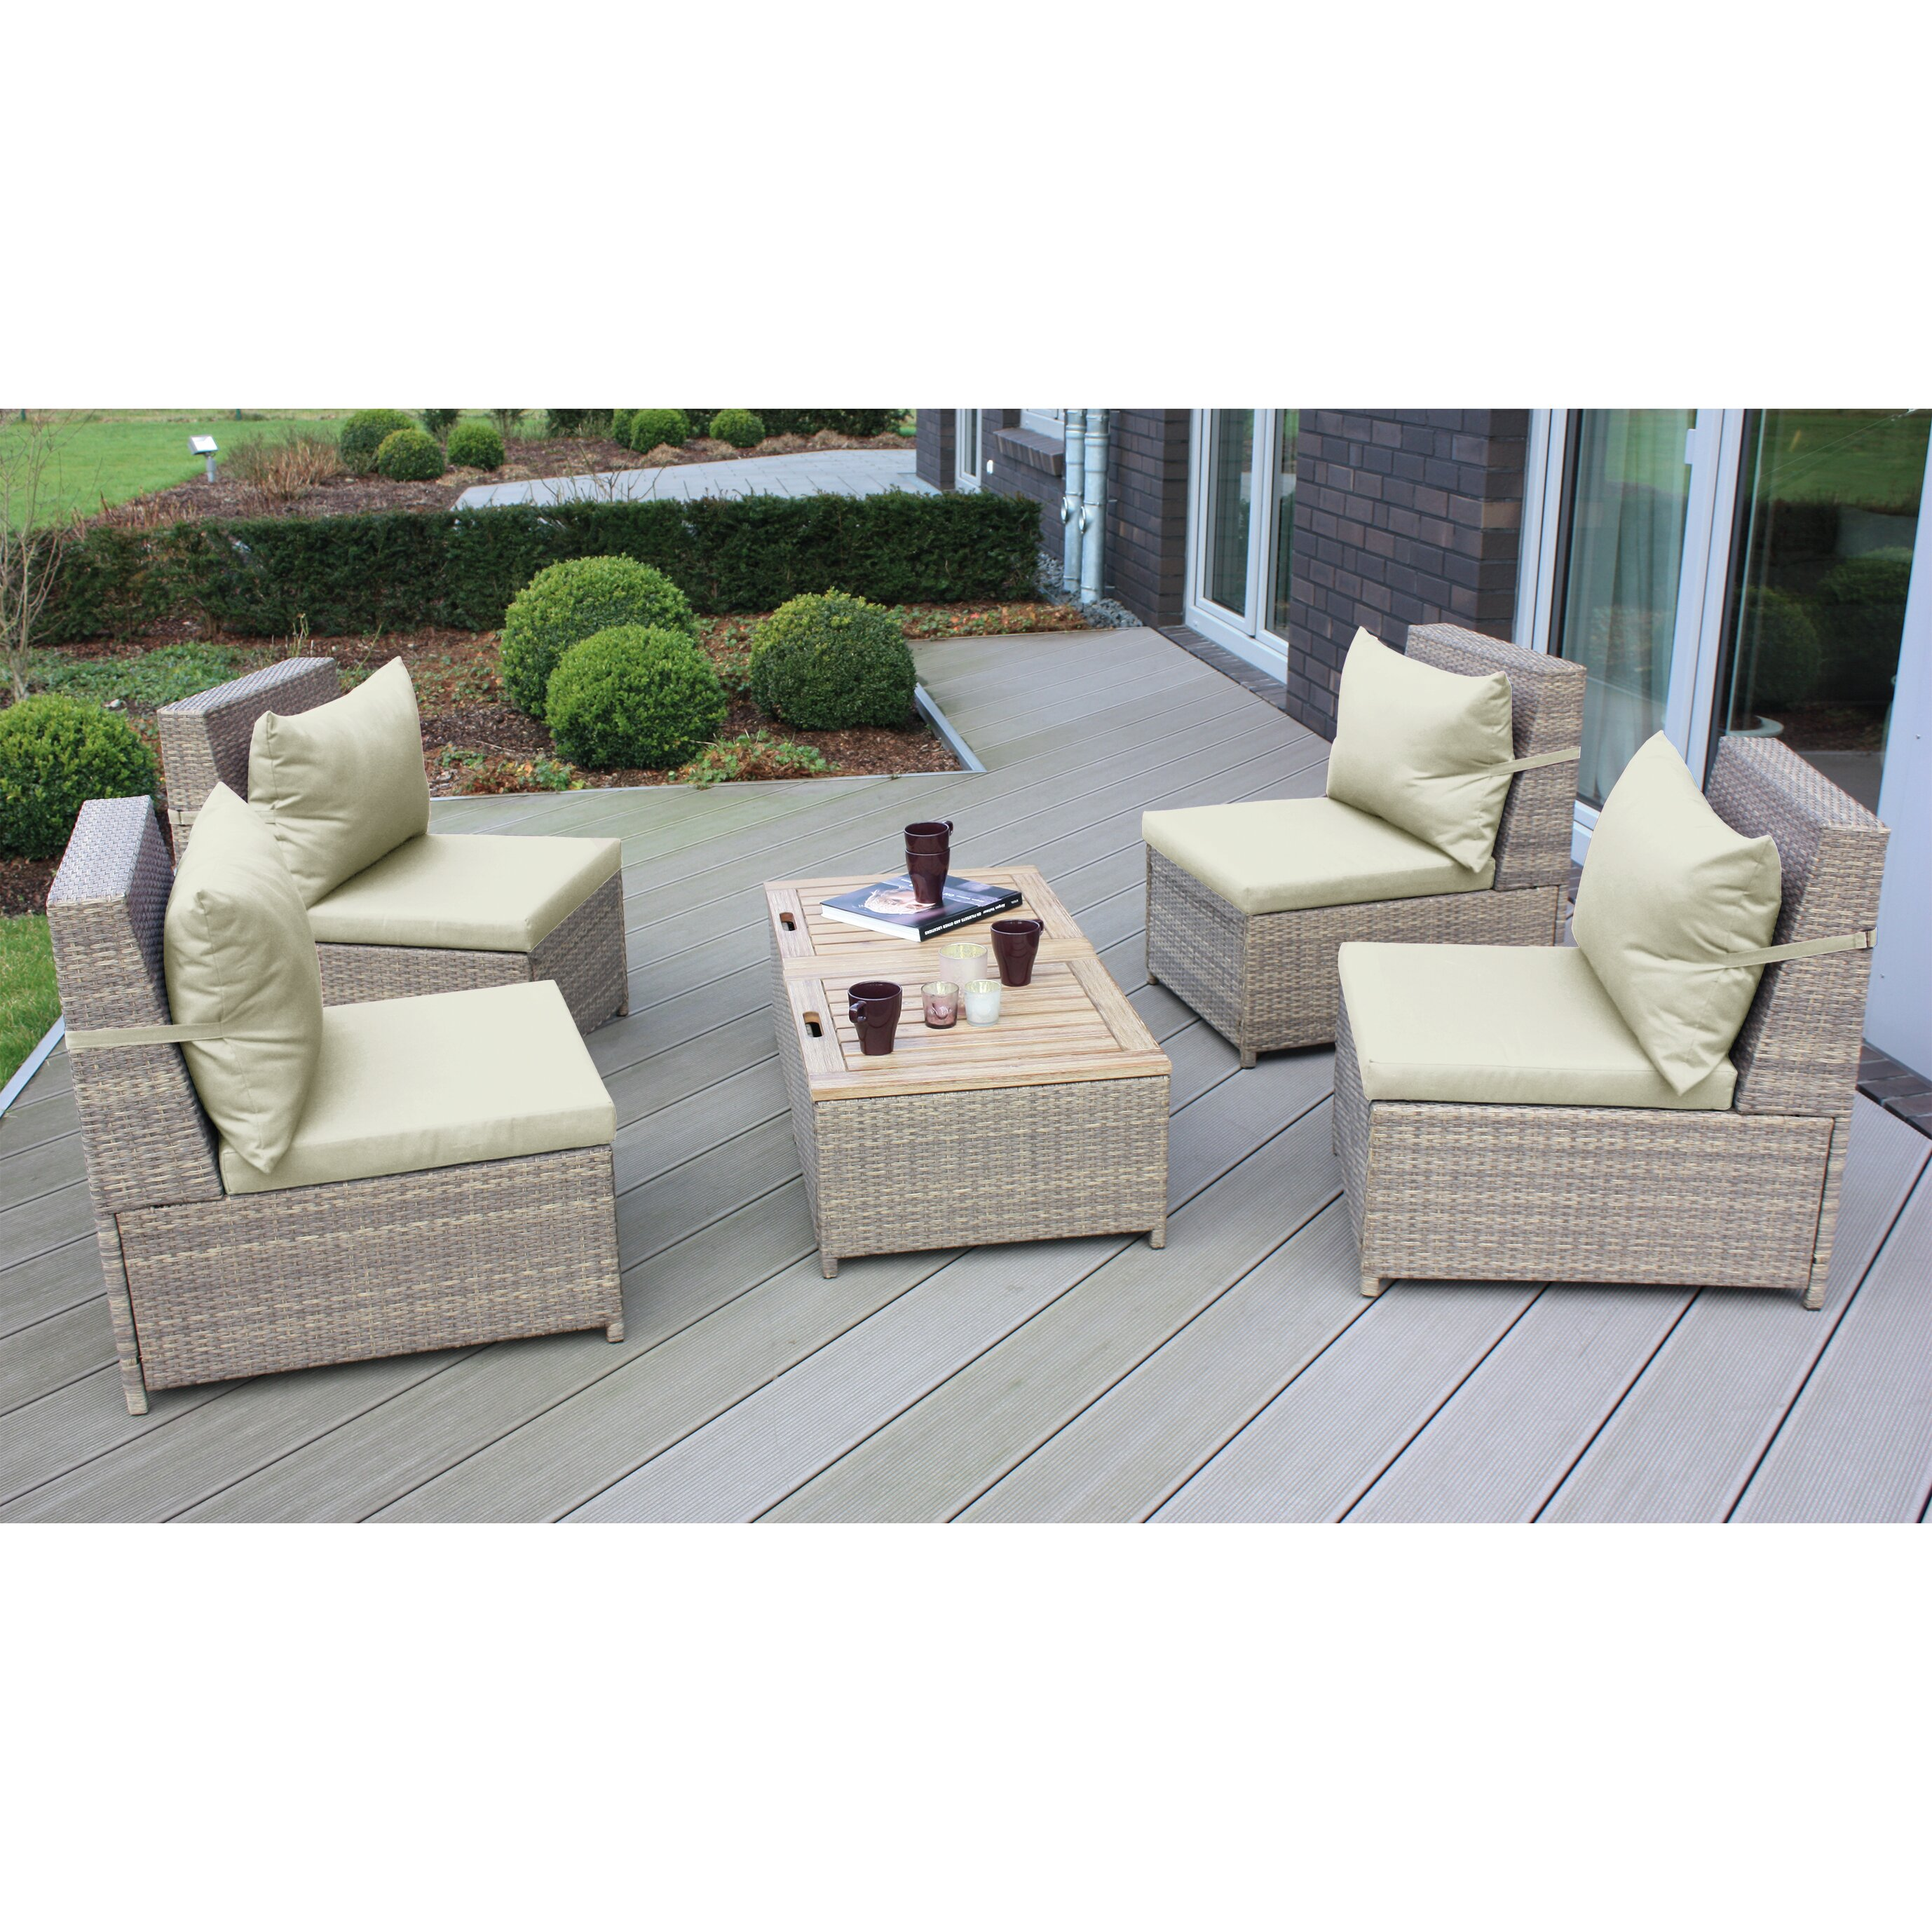 Longshore Tides Schmidt 6 Piece Sectional Seating Group With Cushions Amp Reviews Wayfair Ca